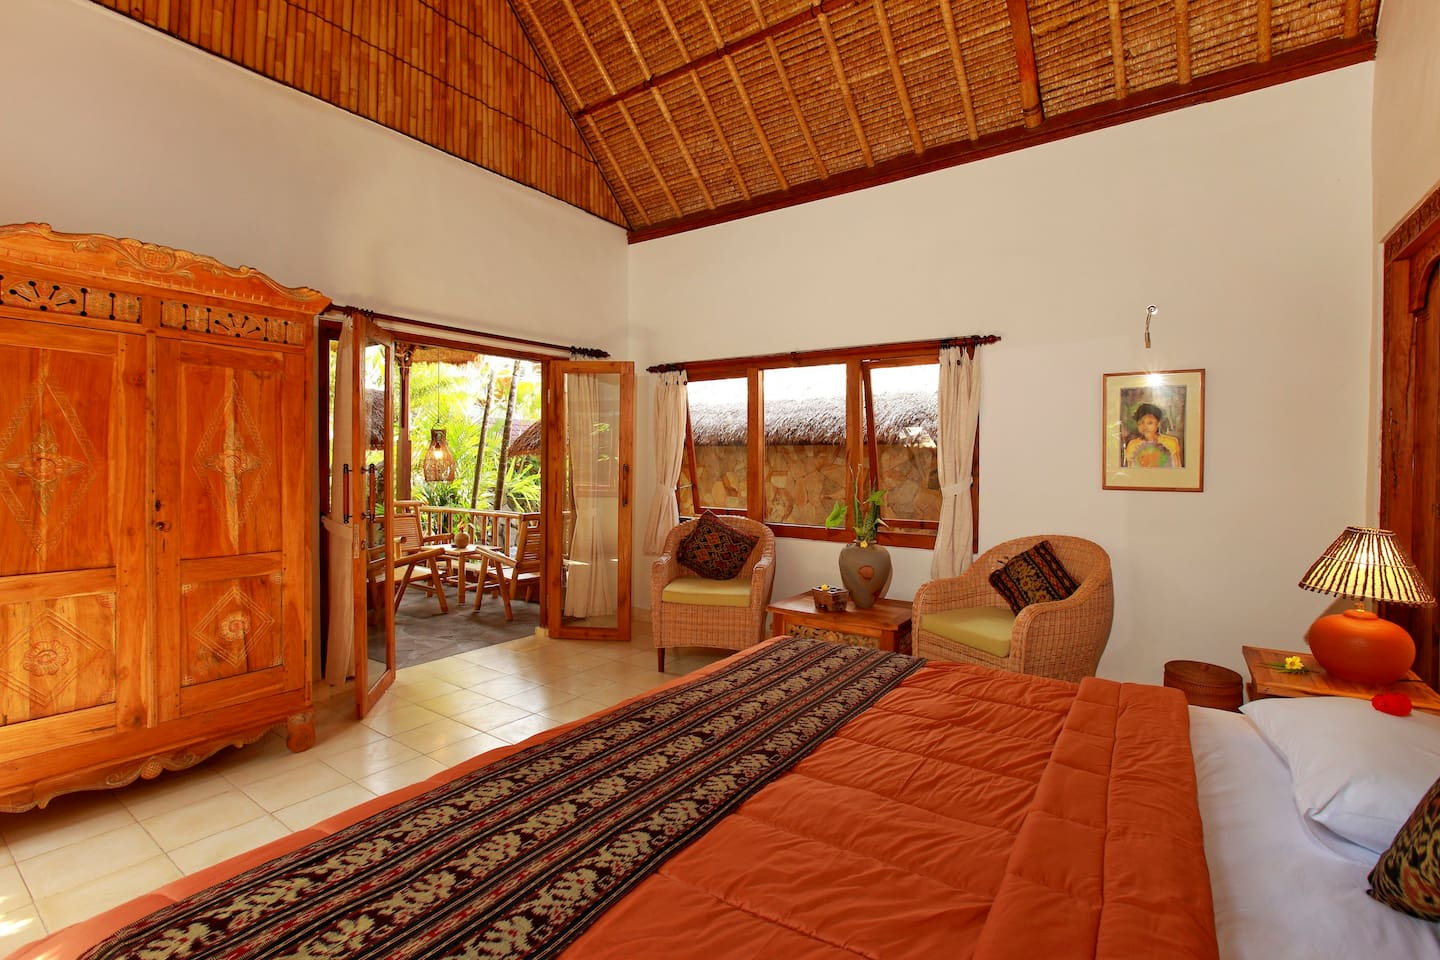 Our elegantly simple rooms are light filled airy and spacious with views of the pool, garden and rice fields.